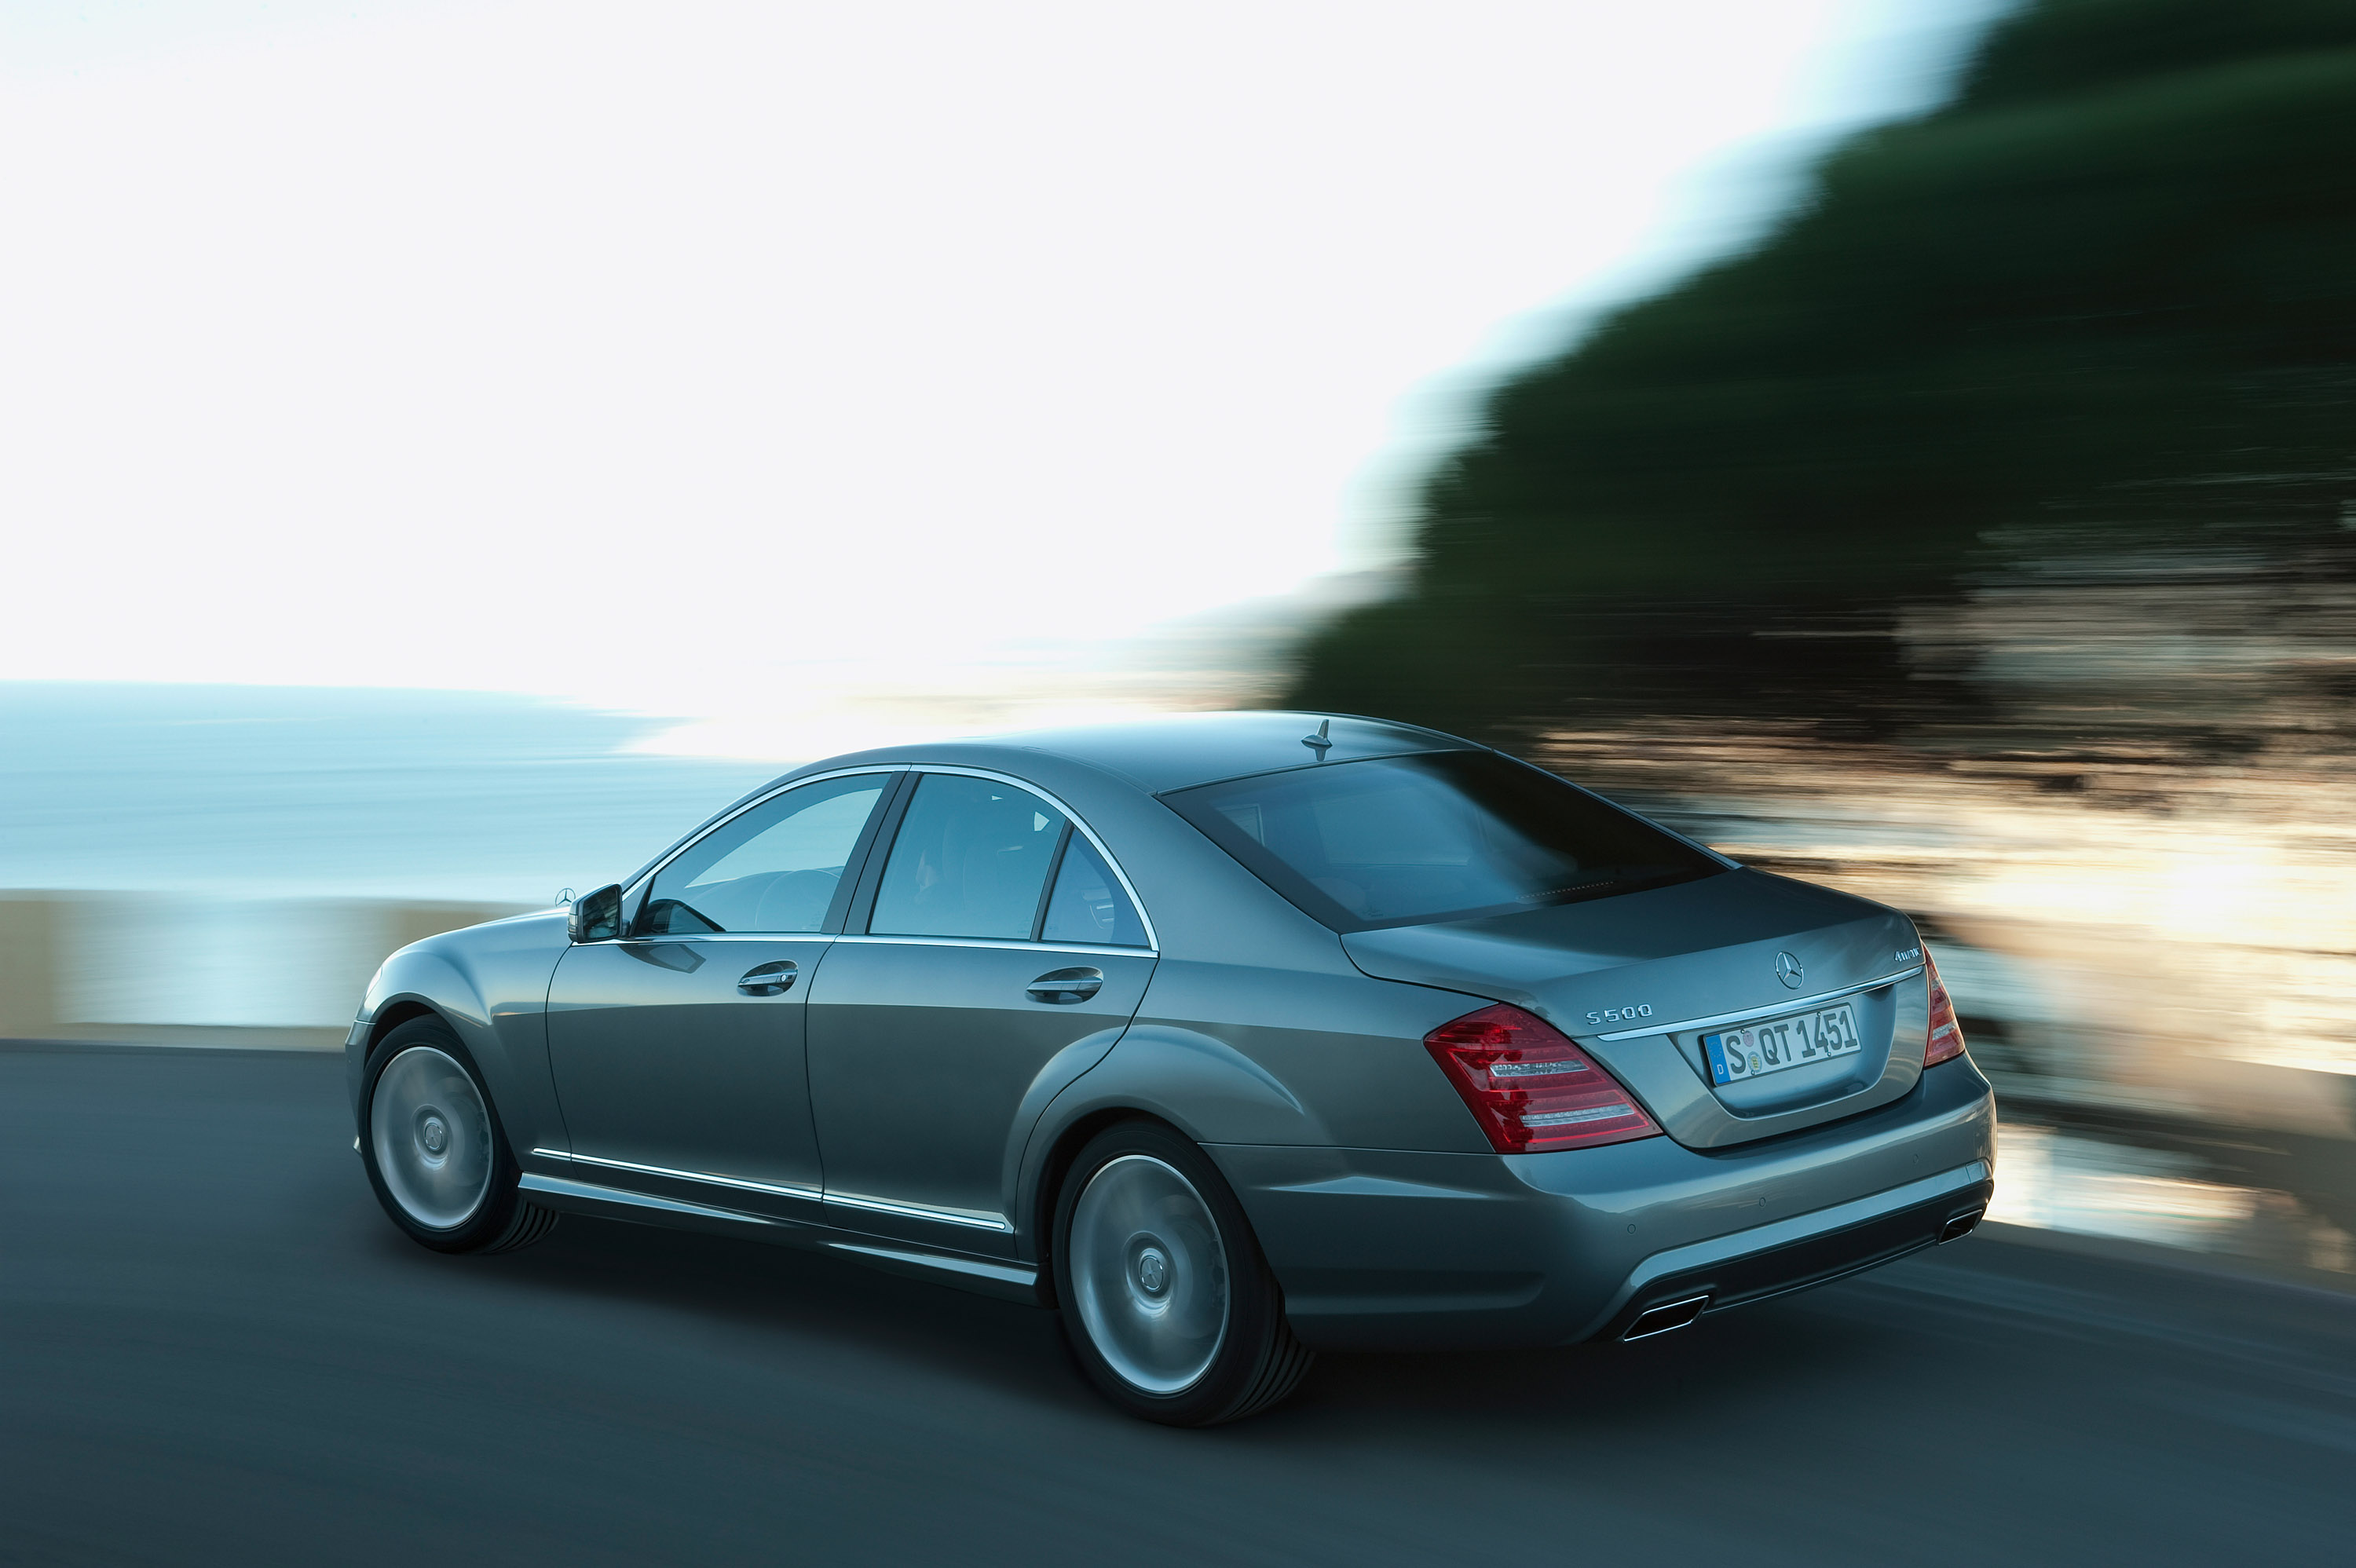 Amg Sports Package For The 2009 S Class And Cl Mercedes Benz 500 4matic